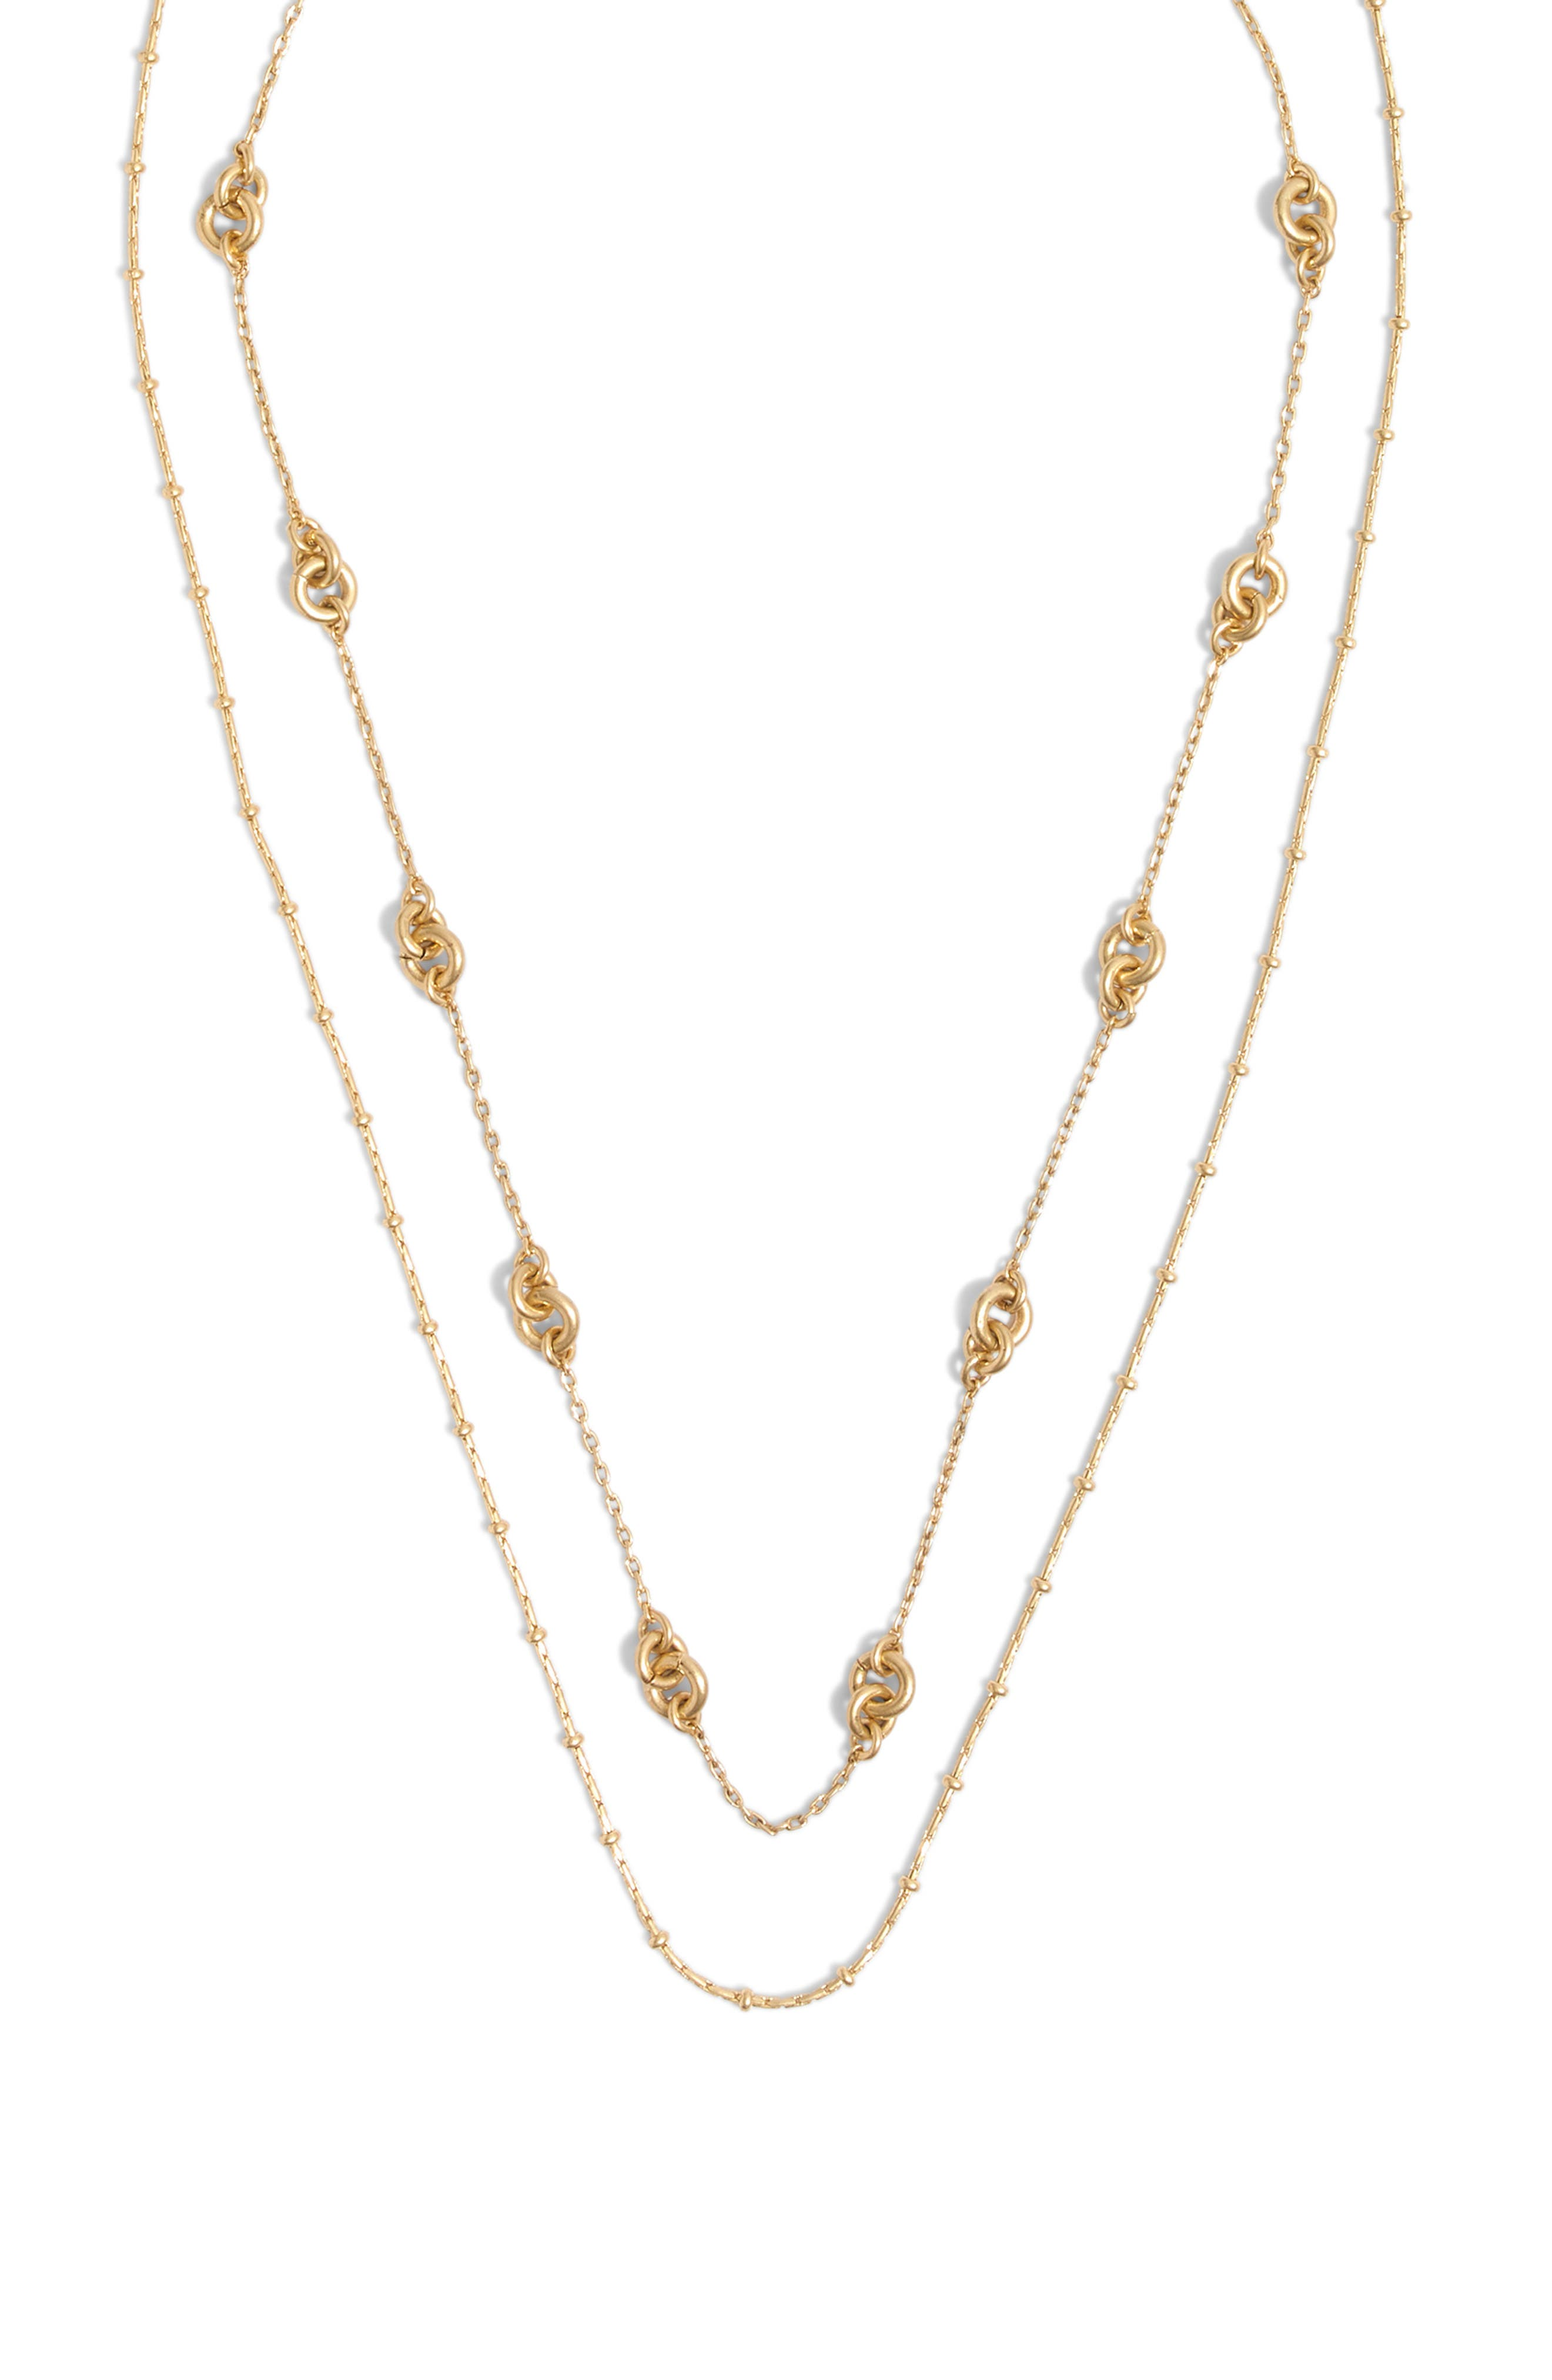 MADEWELL, Layered Chain Necklace, Main thumbnail 1, color, 710